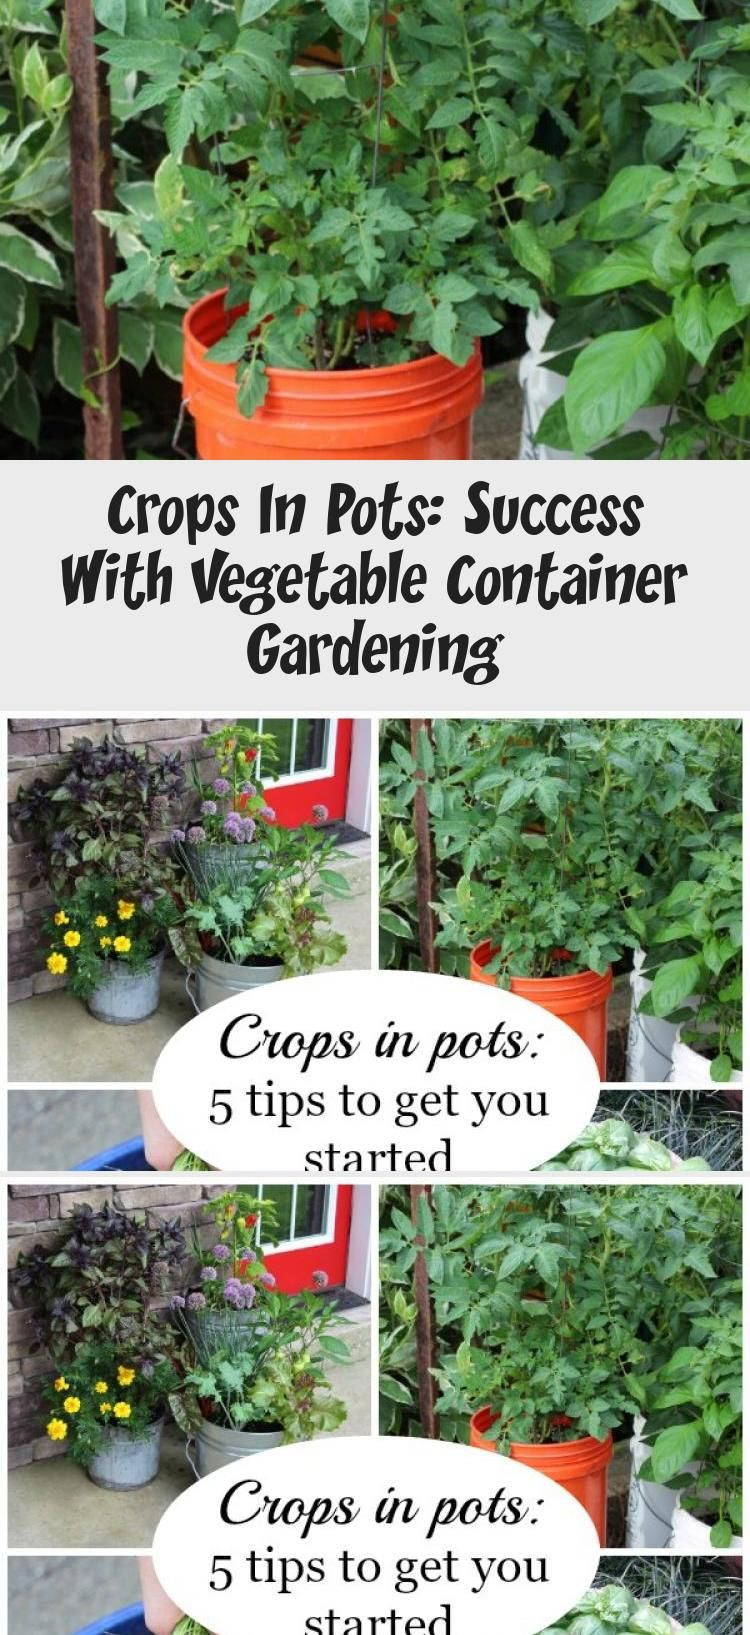 Crops In Pots Success With Vegetable Container Gardening